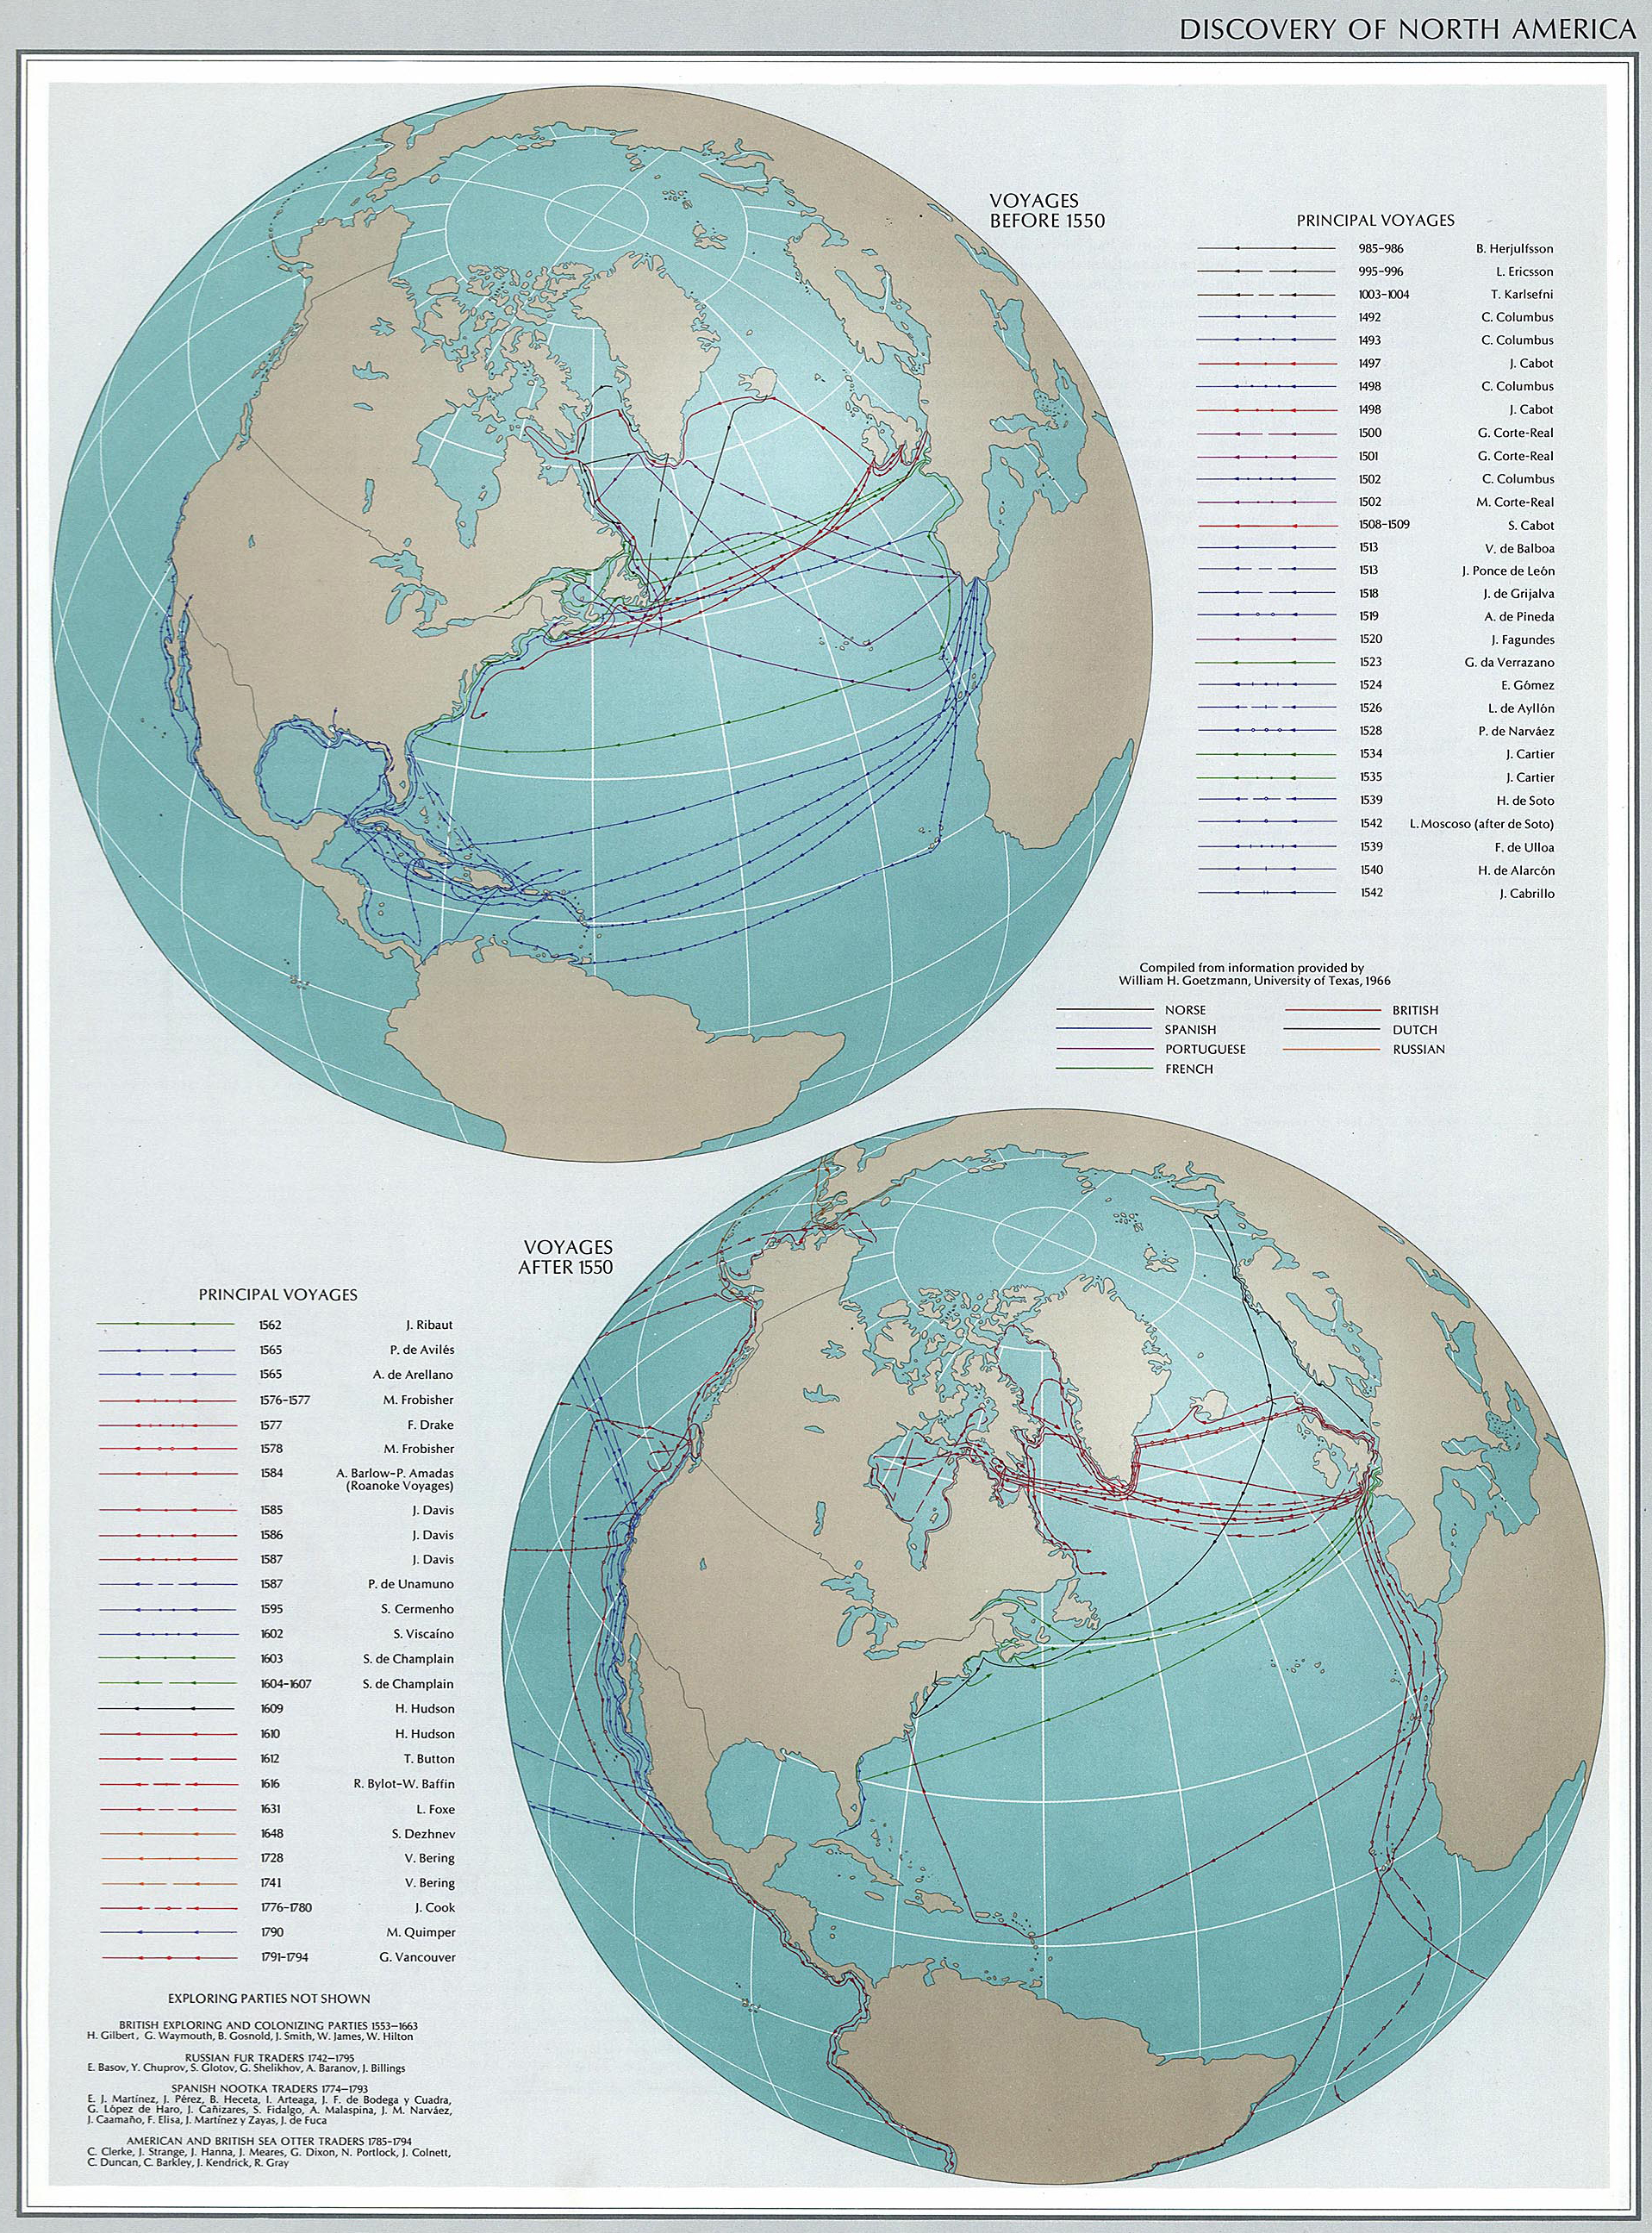 Map of the Discovery of North America. Voyages before and after 1550